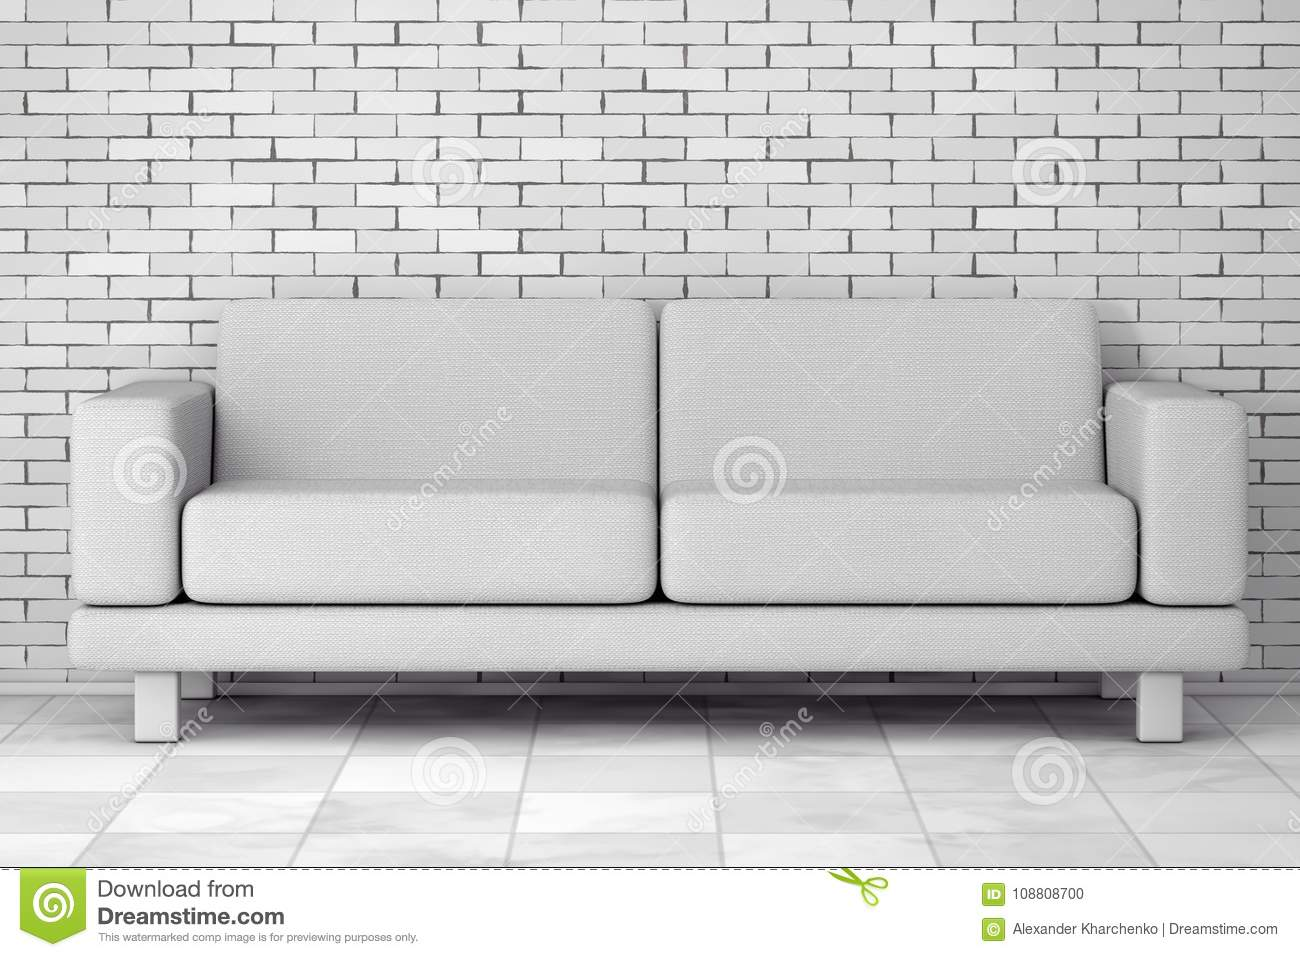 White simple modern sofa furniture in front of brick wall 3d rendering